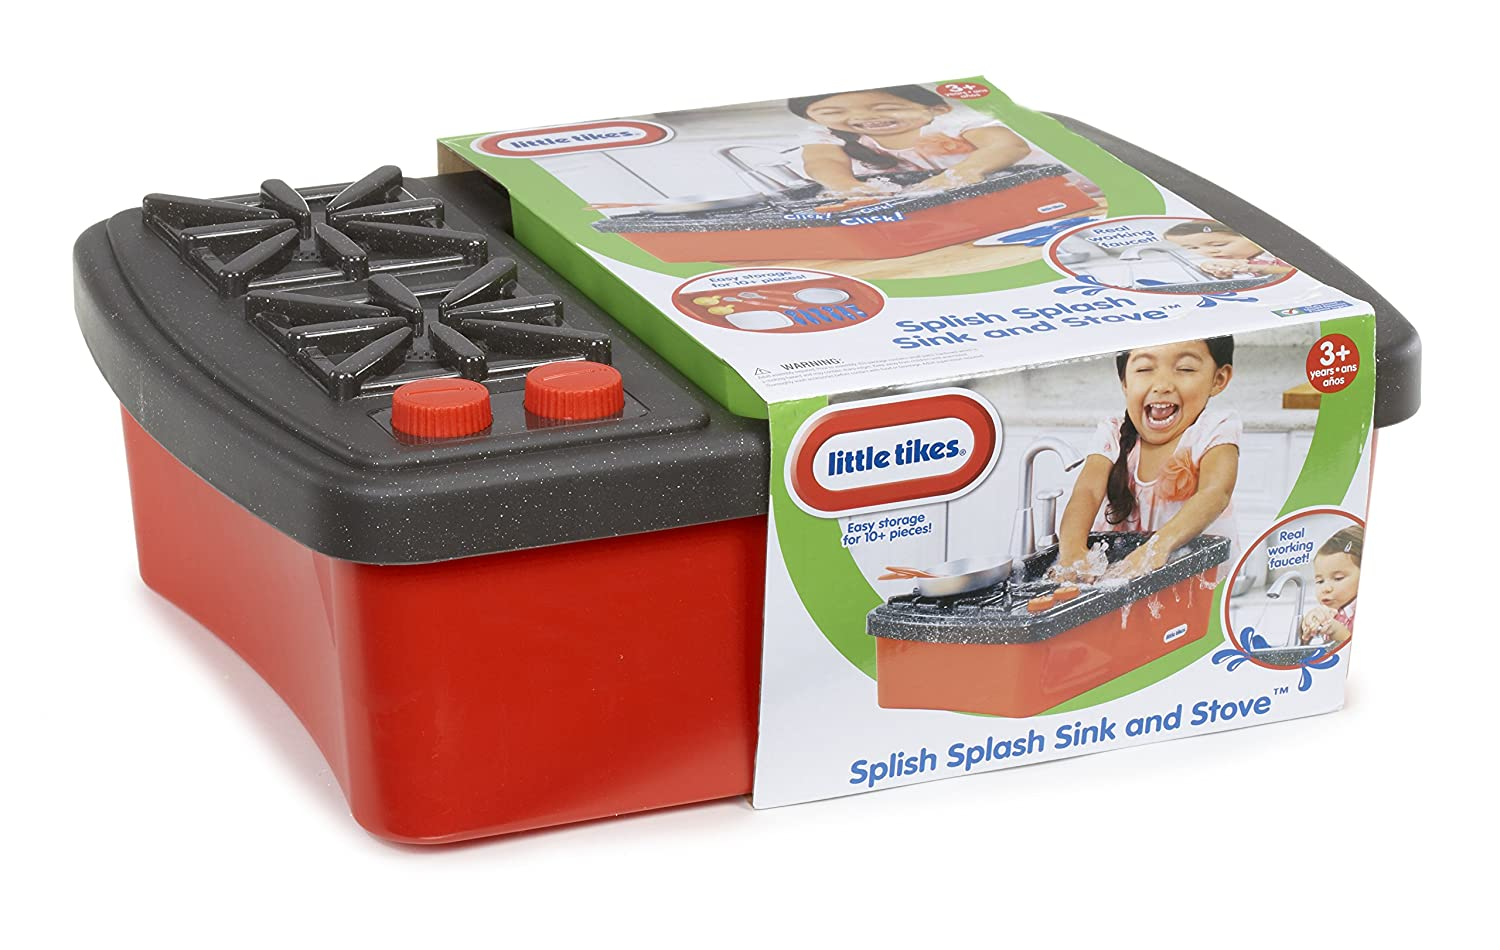 Little Tikes Splish Splash Sink and Stove: Little Tikes: Amazon.co ...